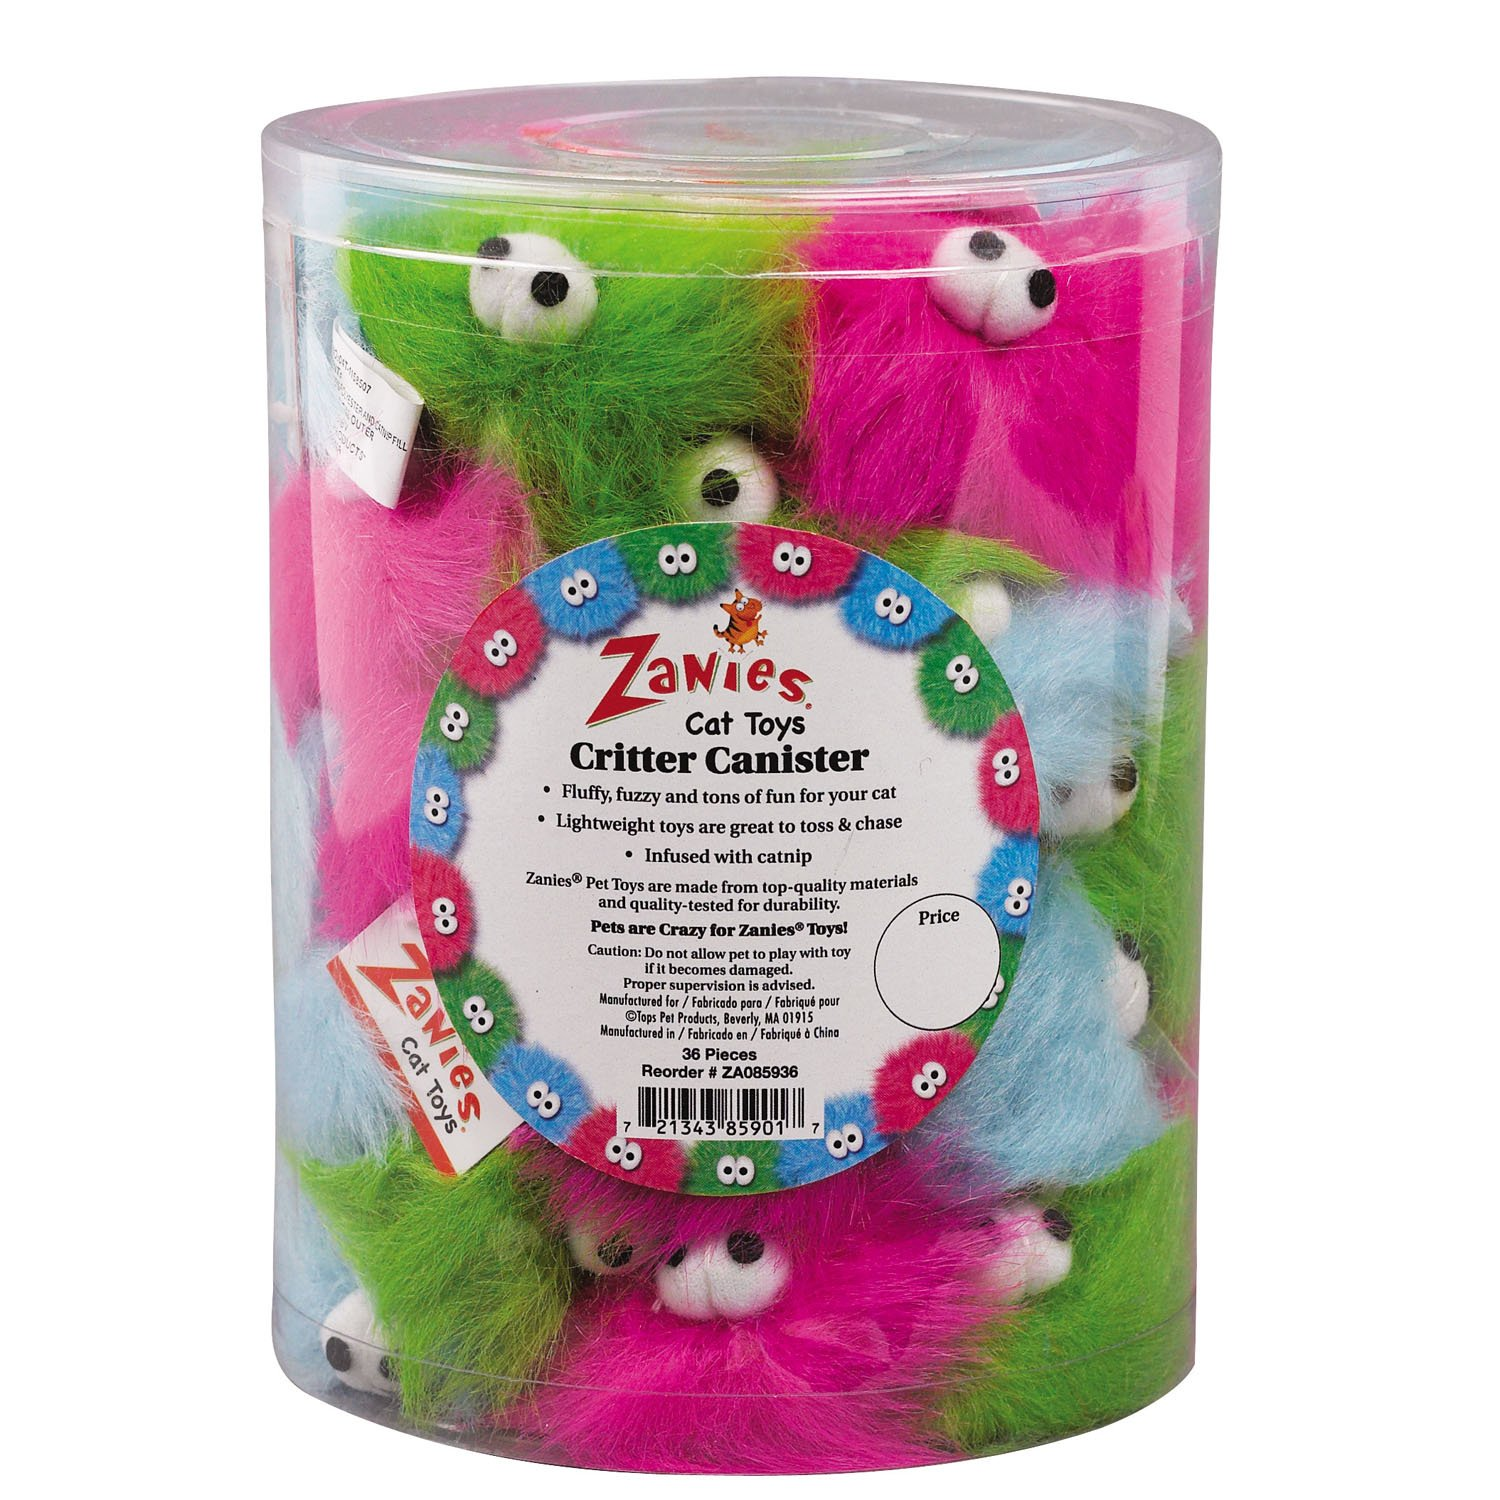 Zanies Critter Cat Toys, 36-Piece Canisters by Zanies